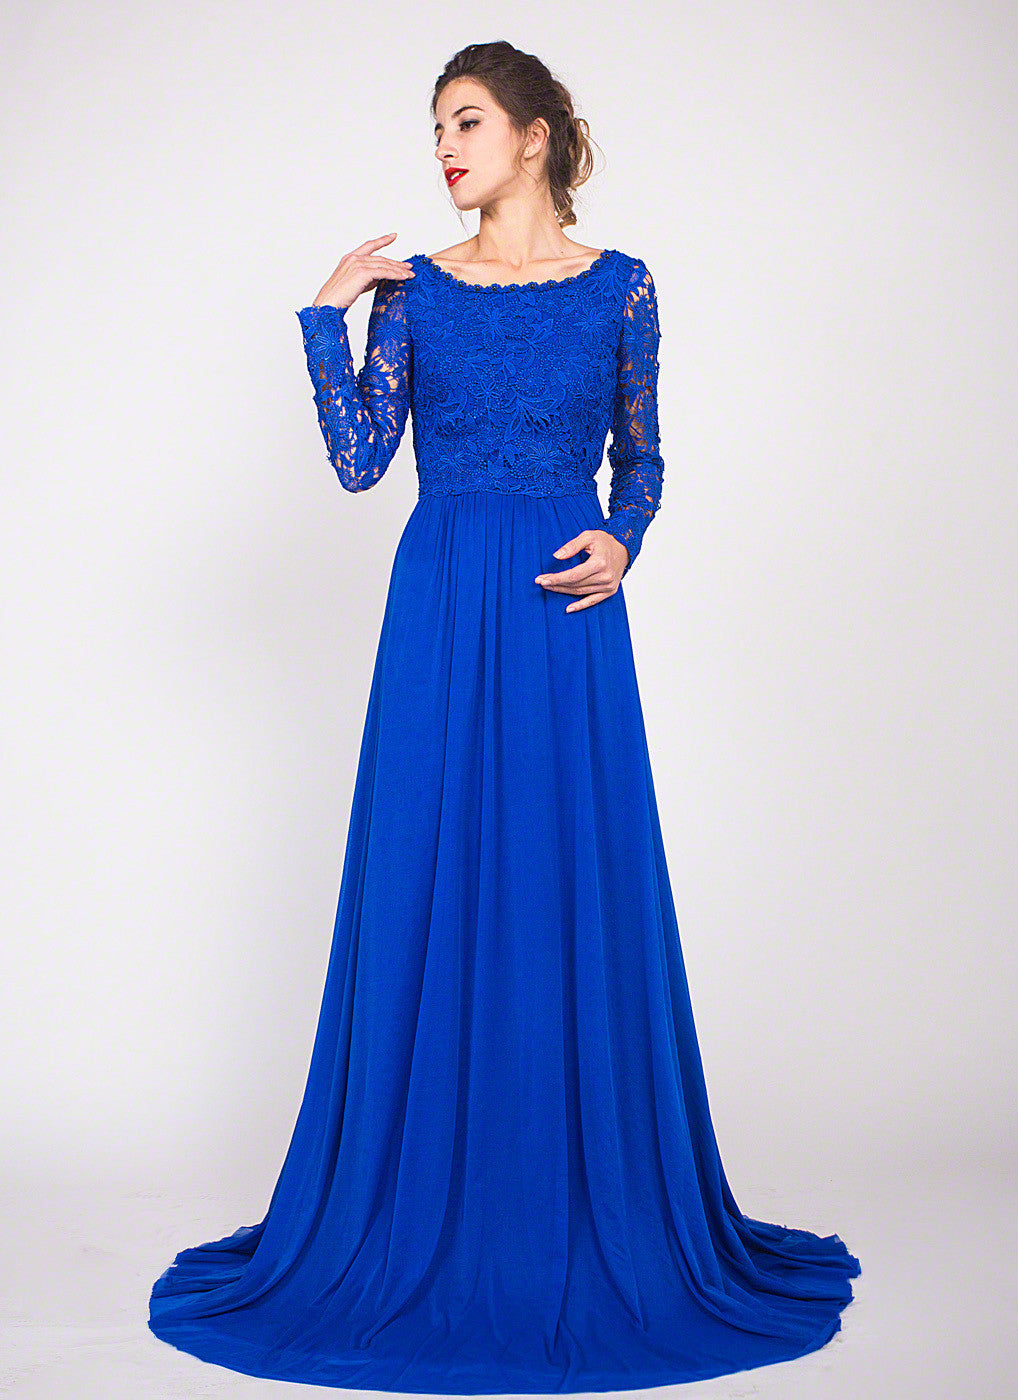 Royal Blue Floor Length Lace Evening Gown with Rhinestone ...